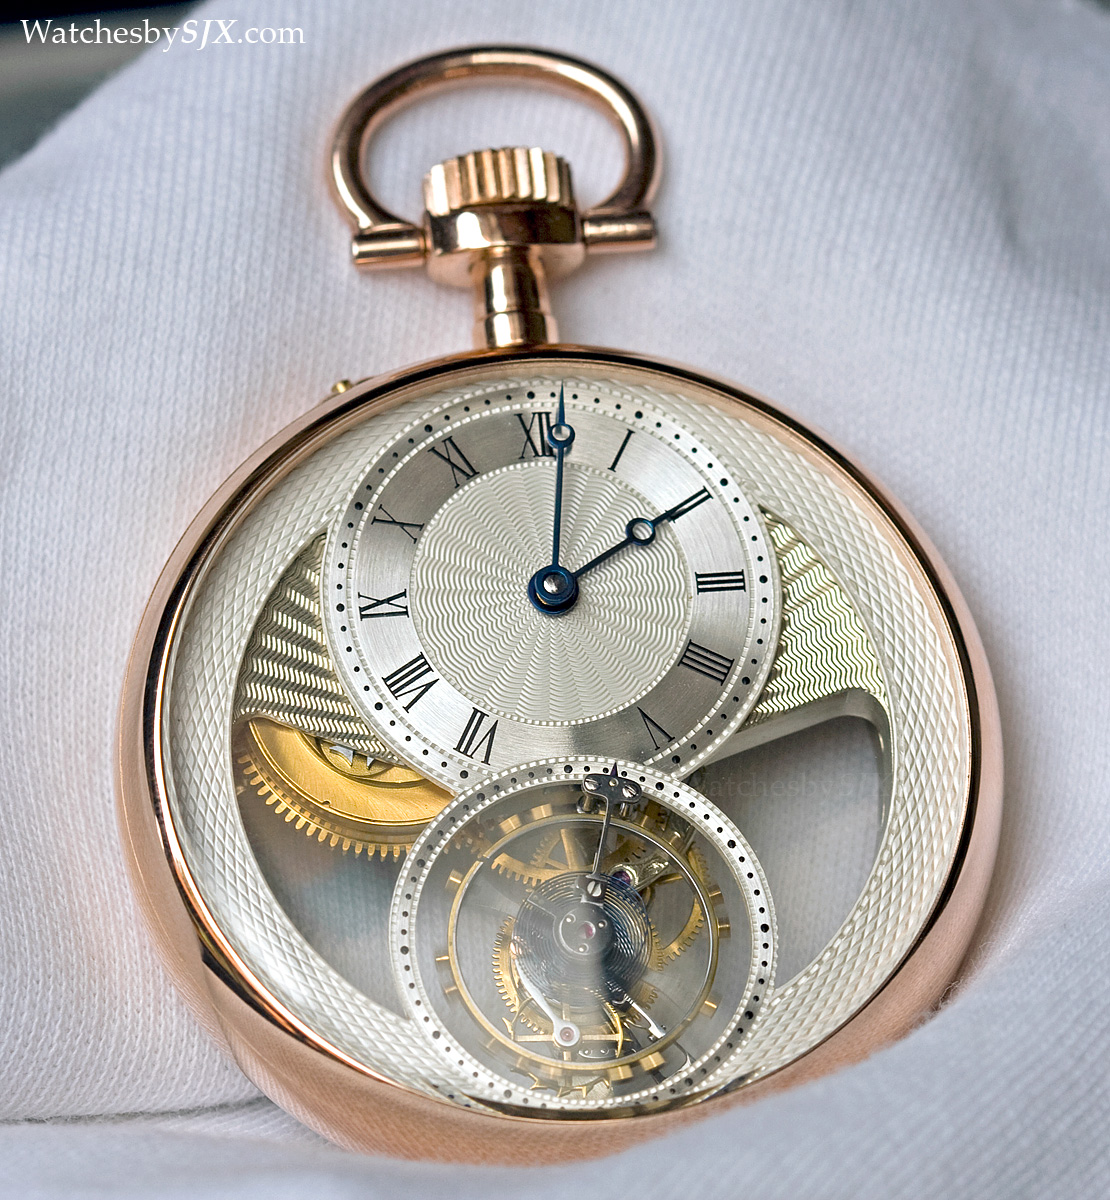 Wilhelm-Rieber-Flying-Tourbillon-with-spring-detent-escapement-pocket-watch-2817291